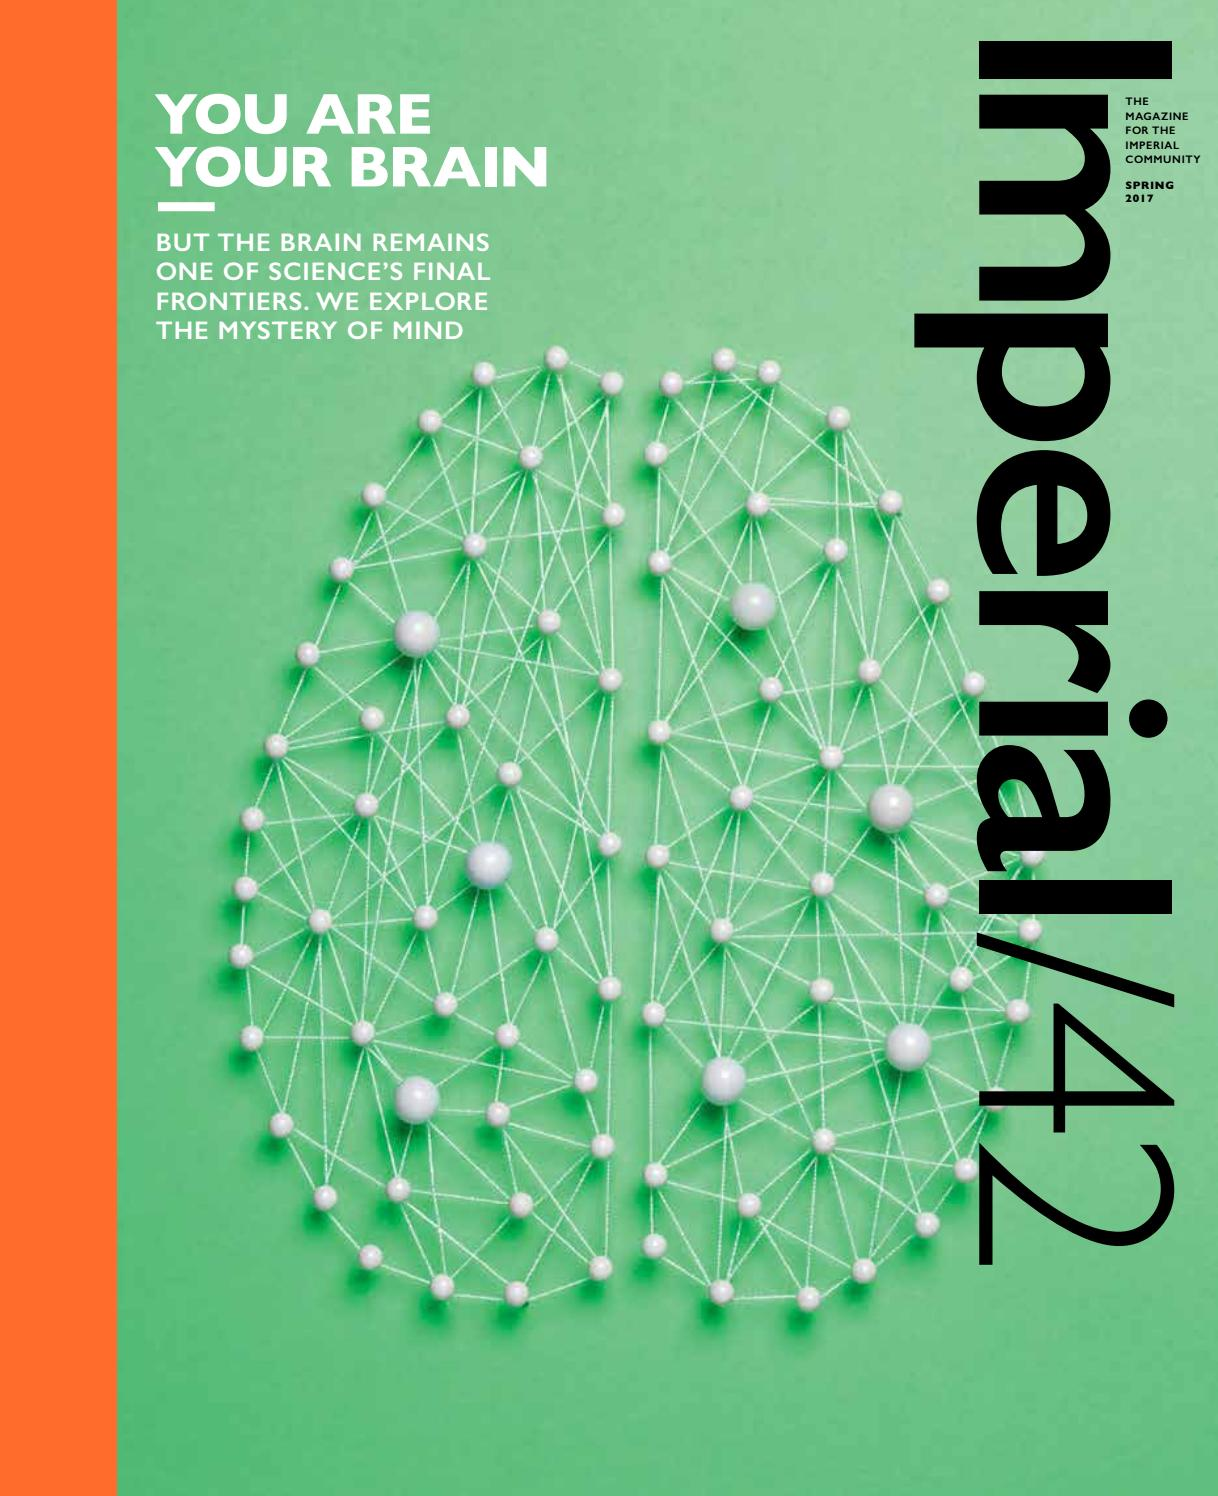 Imperial Issue 42 By Imperial College London Issuu